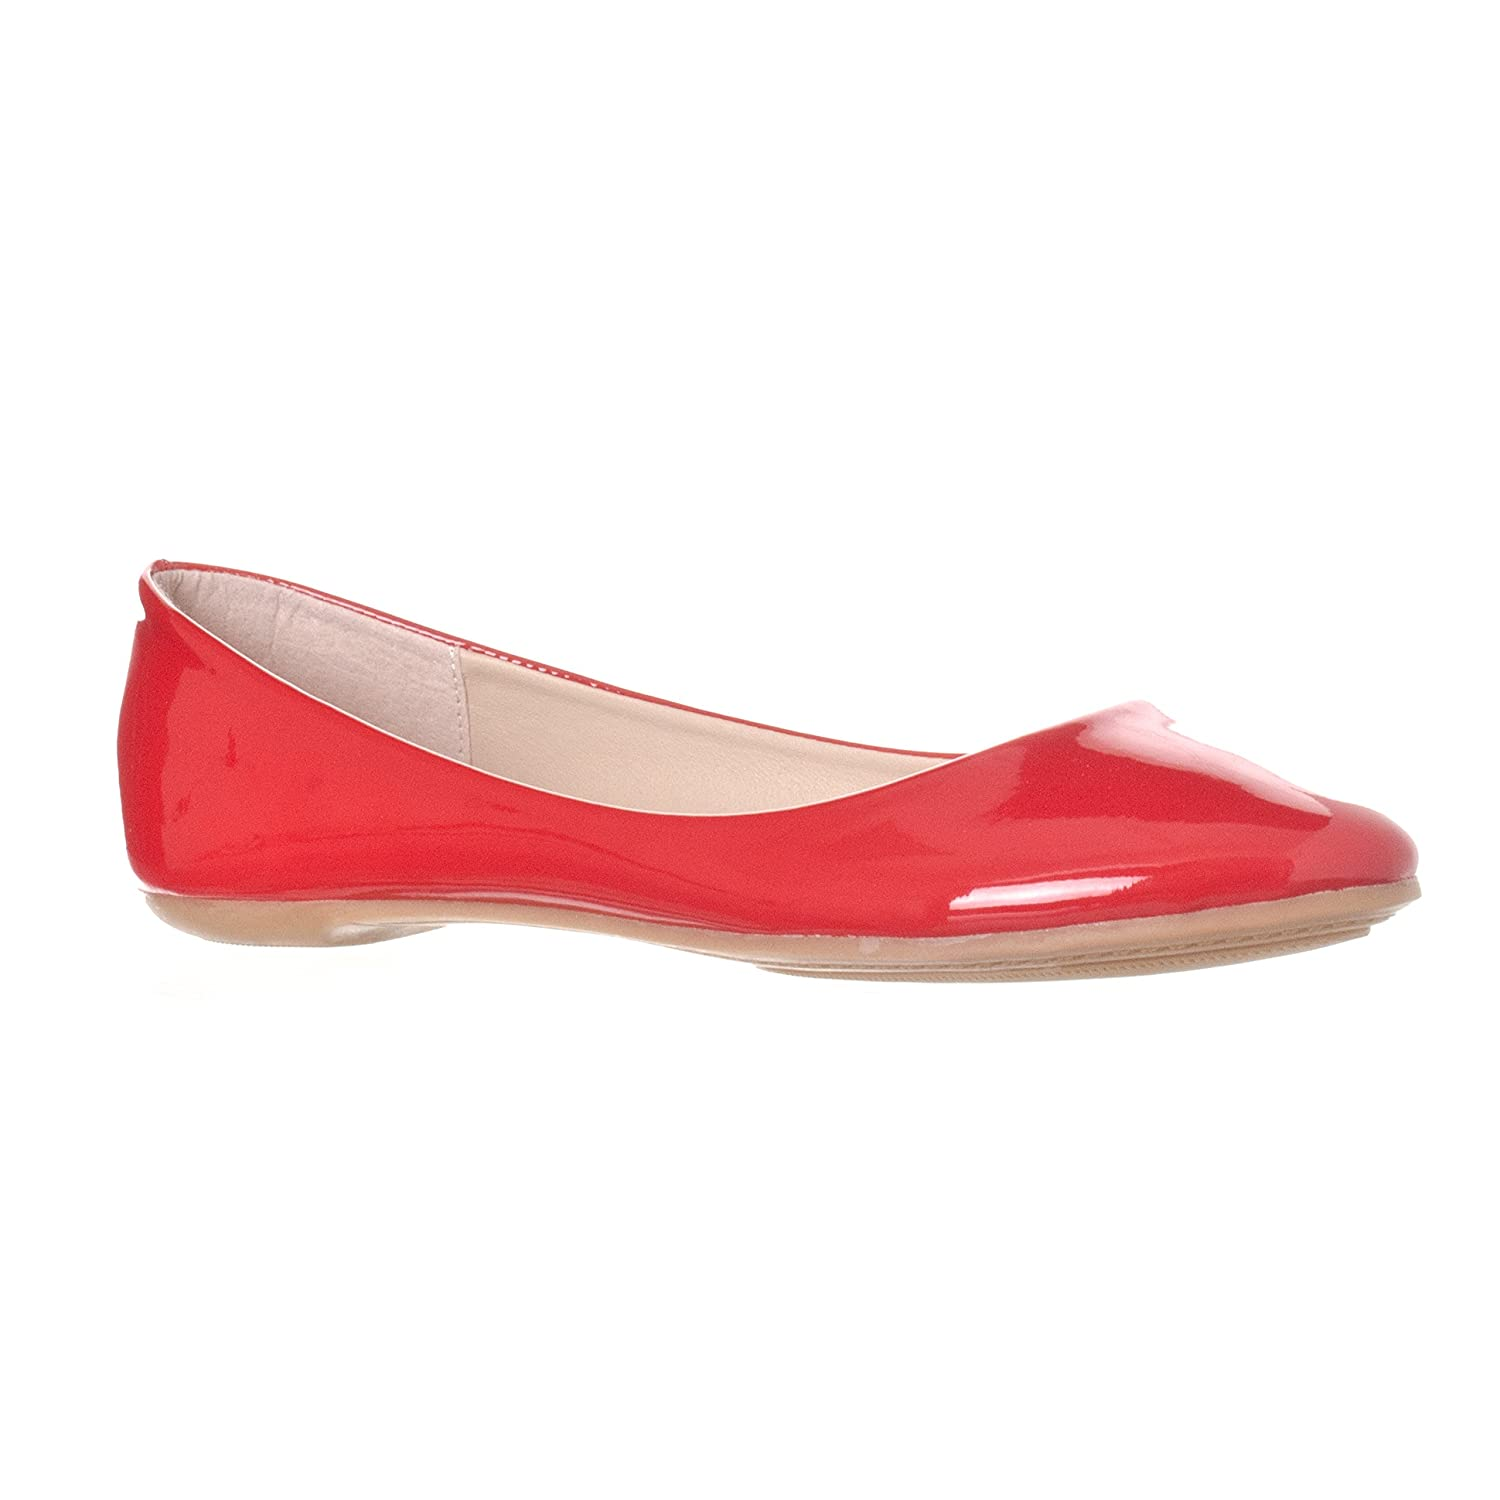 Riverberry Women's Aria Closed, Round Toe Ballet Flat Slip On Shoes B017CC5FKS 7.5 M US Red Patent